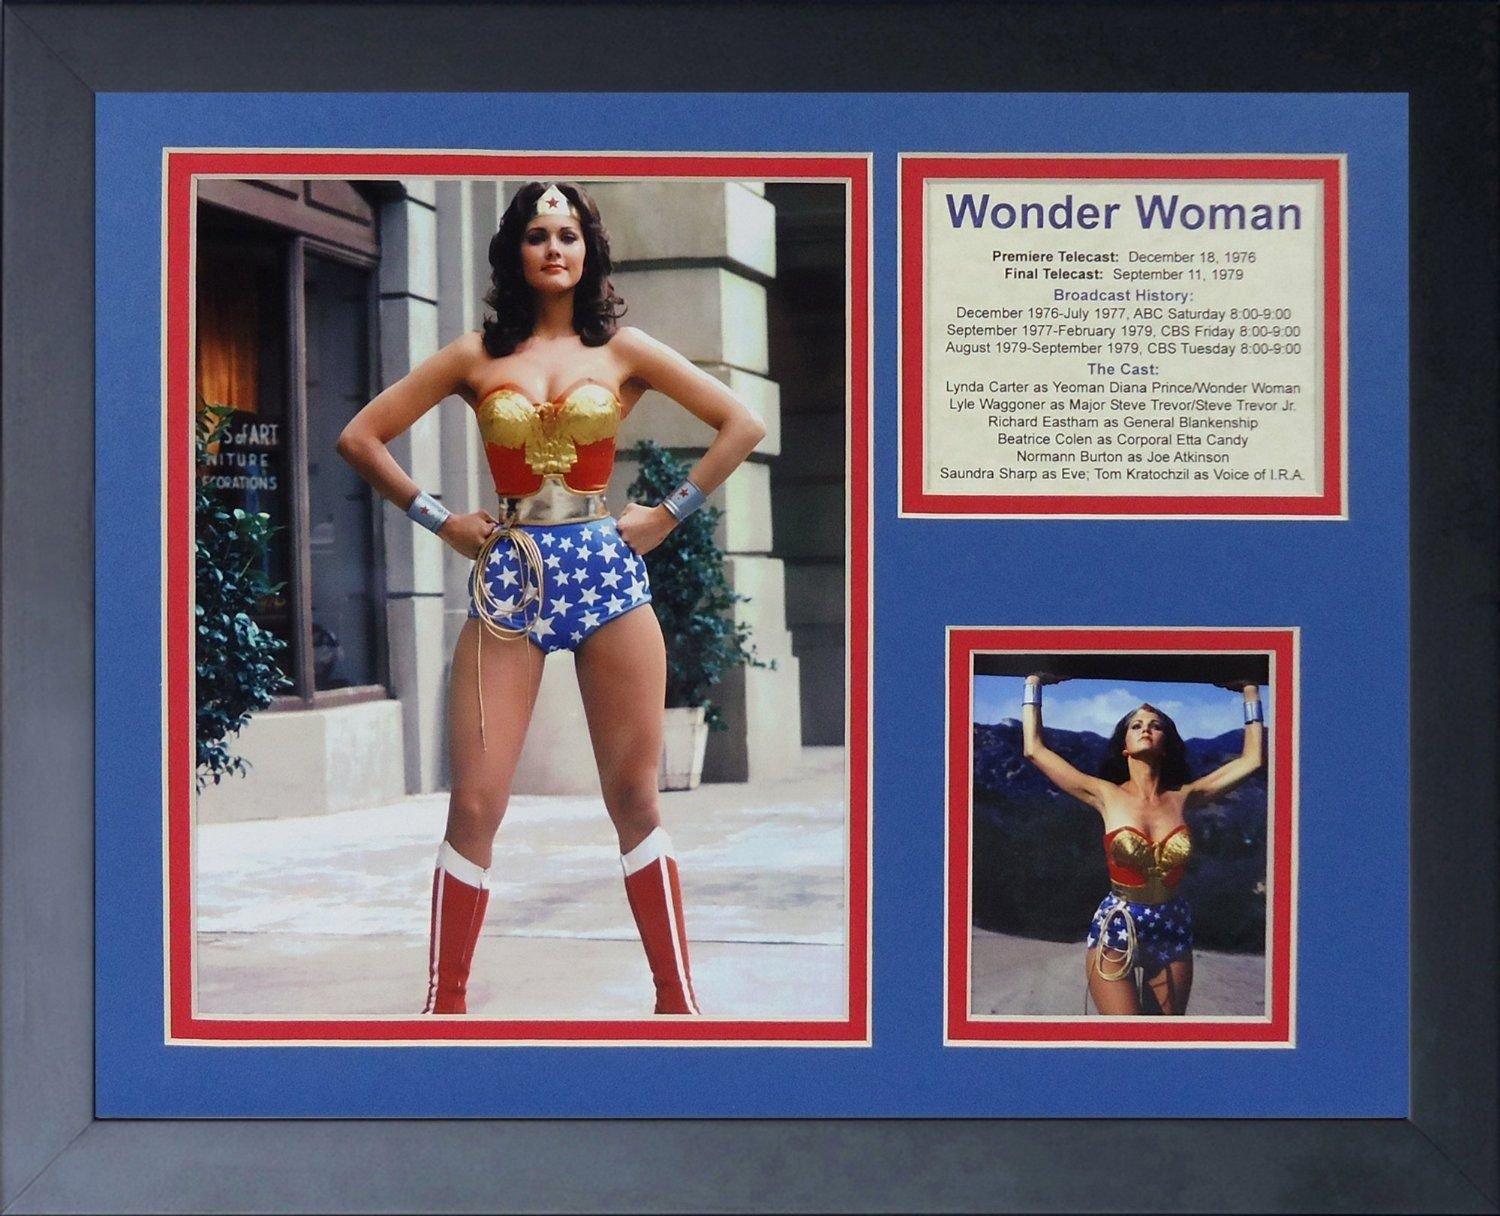 11x14 FRAMED WONDER WOMAN 8X10 PHOTO LYNDA CARTER CAST PREMIERE 1976 YEOMAN at Amazons Sports Collectibles Store